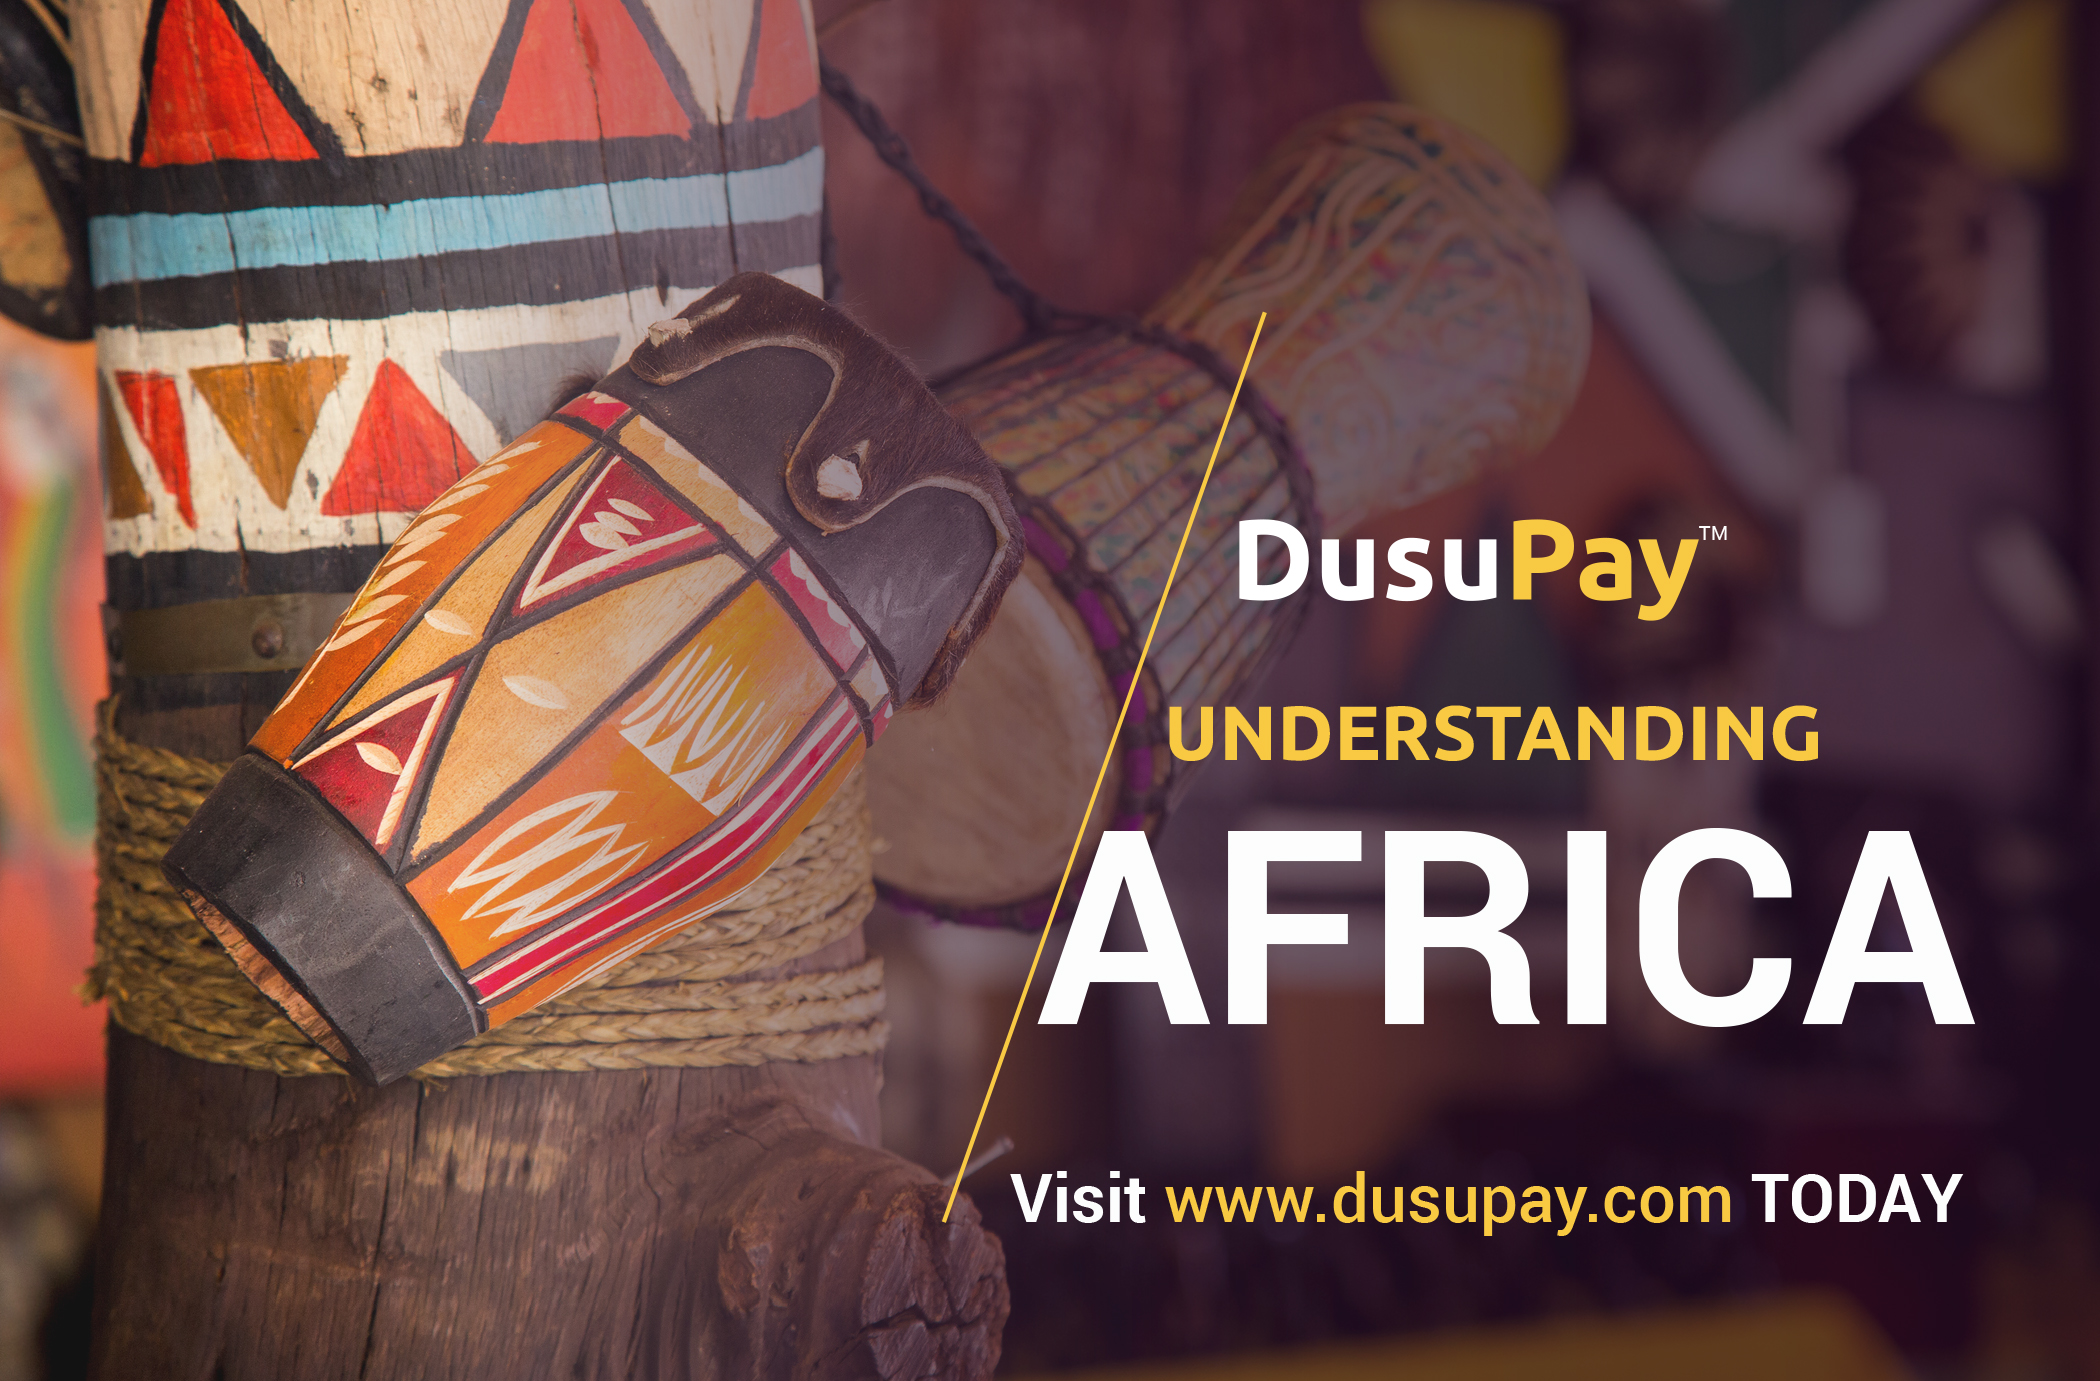 What is the best way for businesses to accept and make payments across Africa